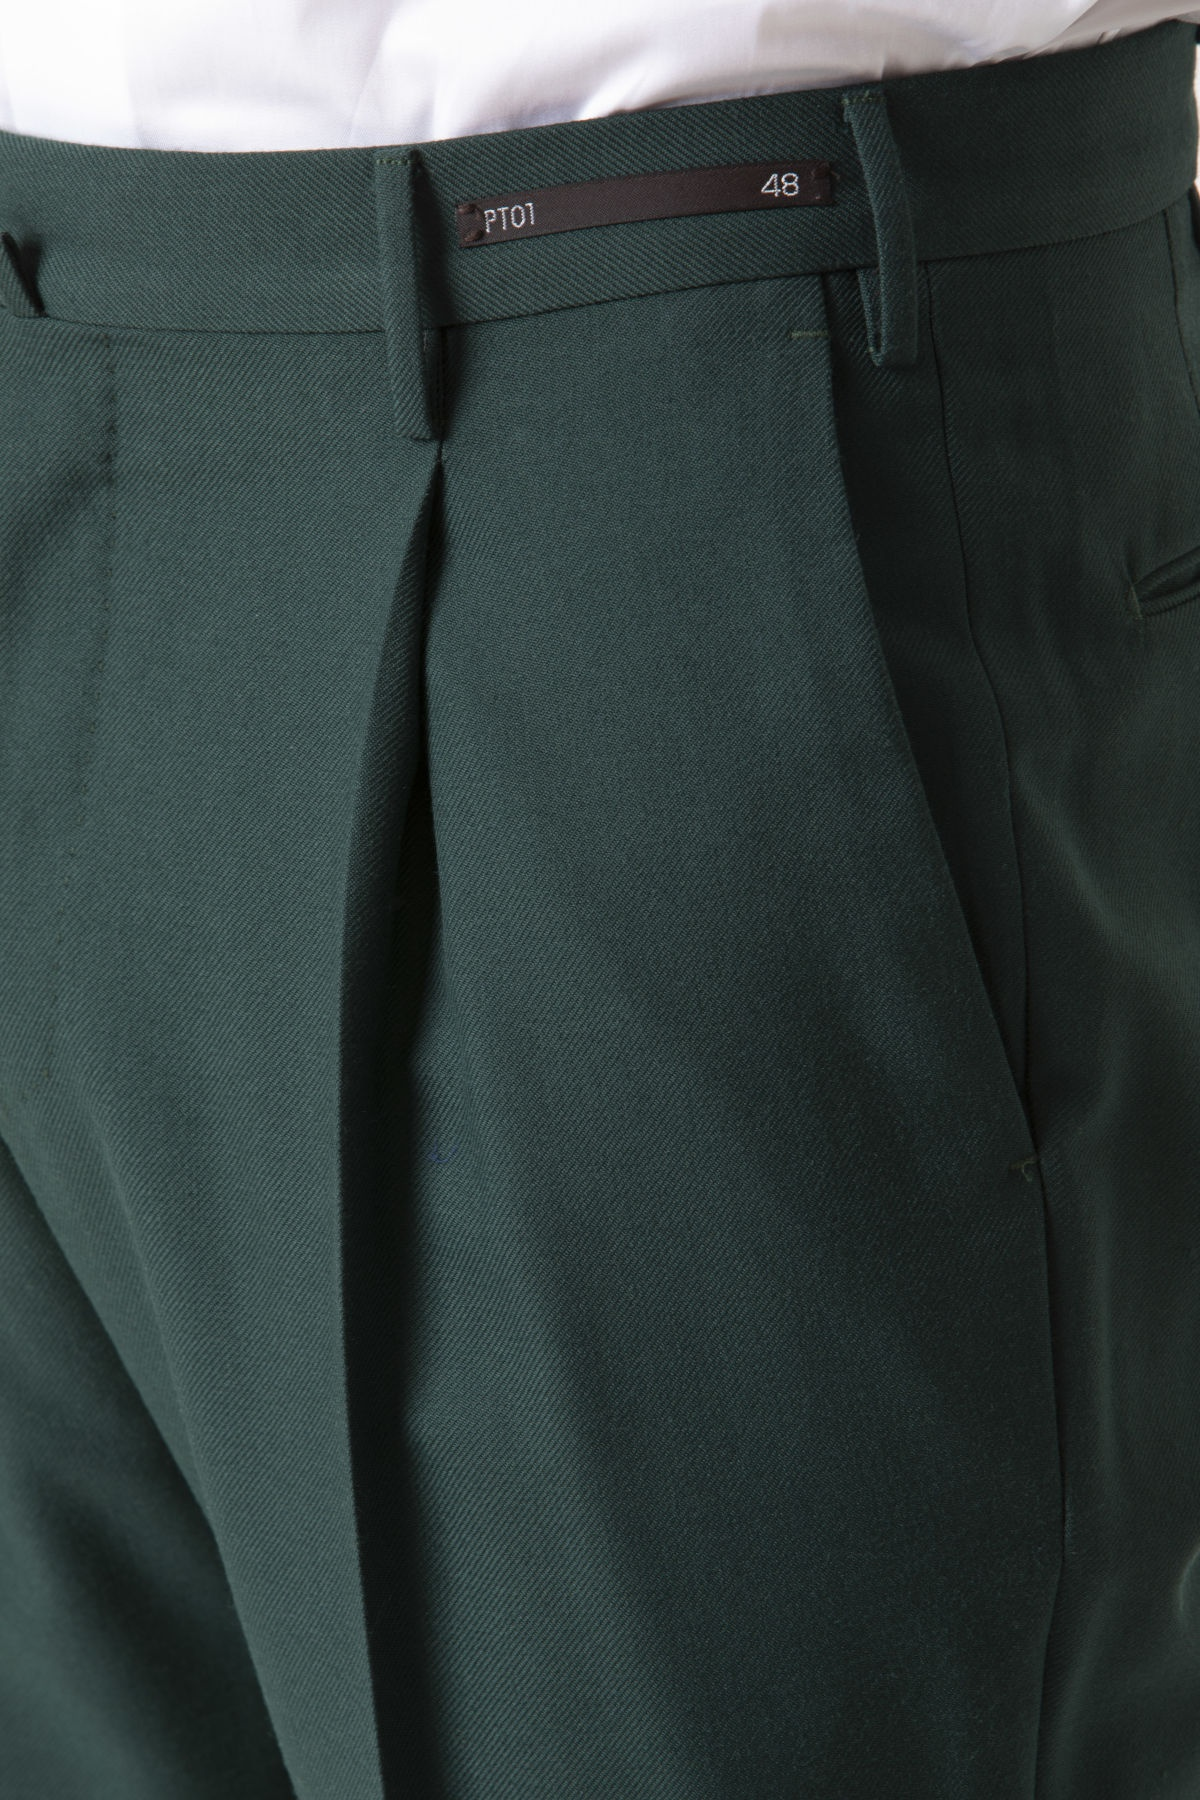 ANIMAL Trousers for man PT01 F/W